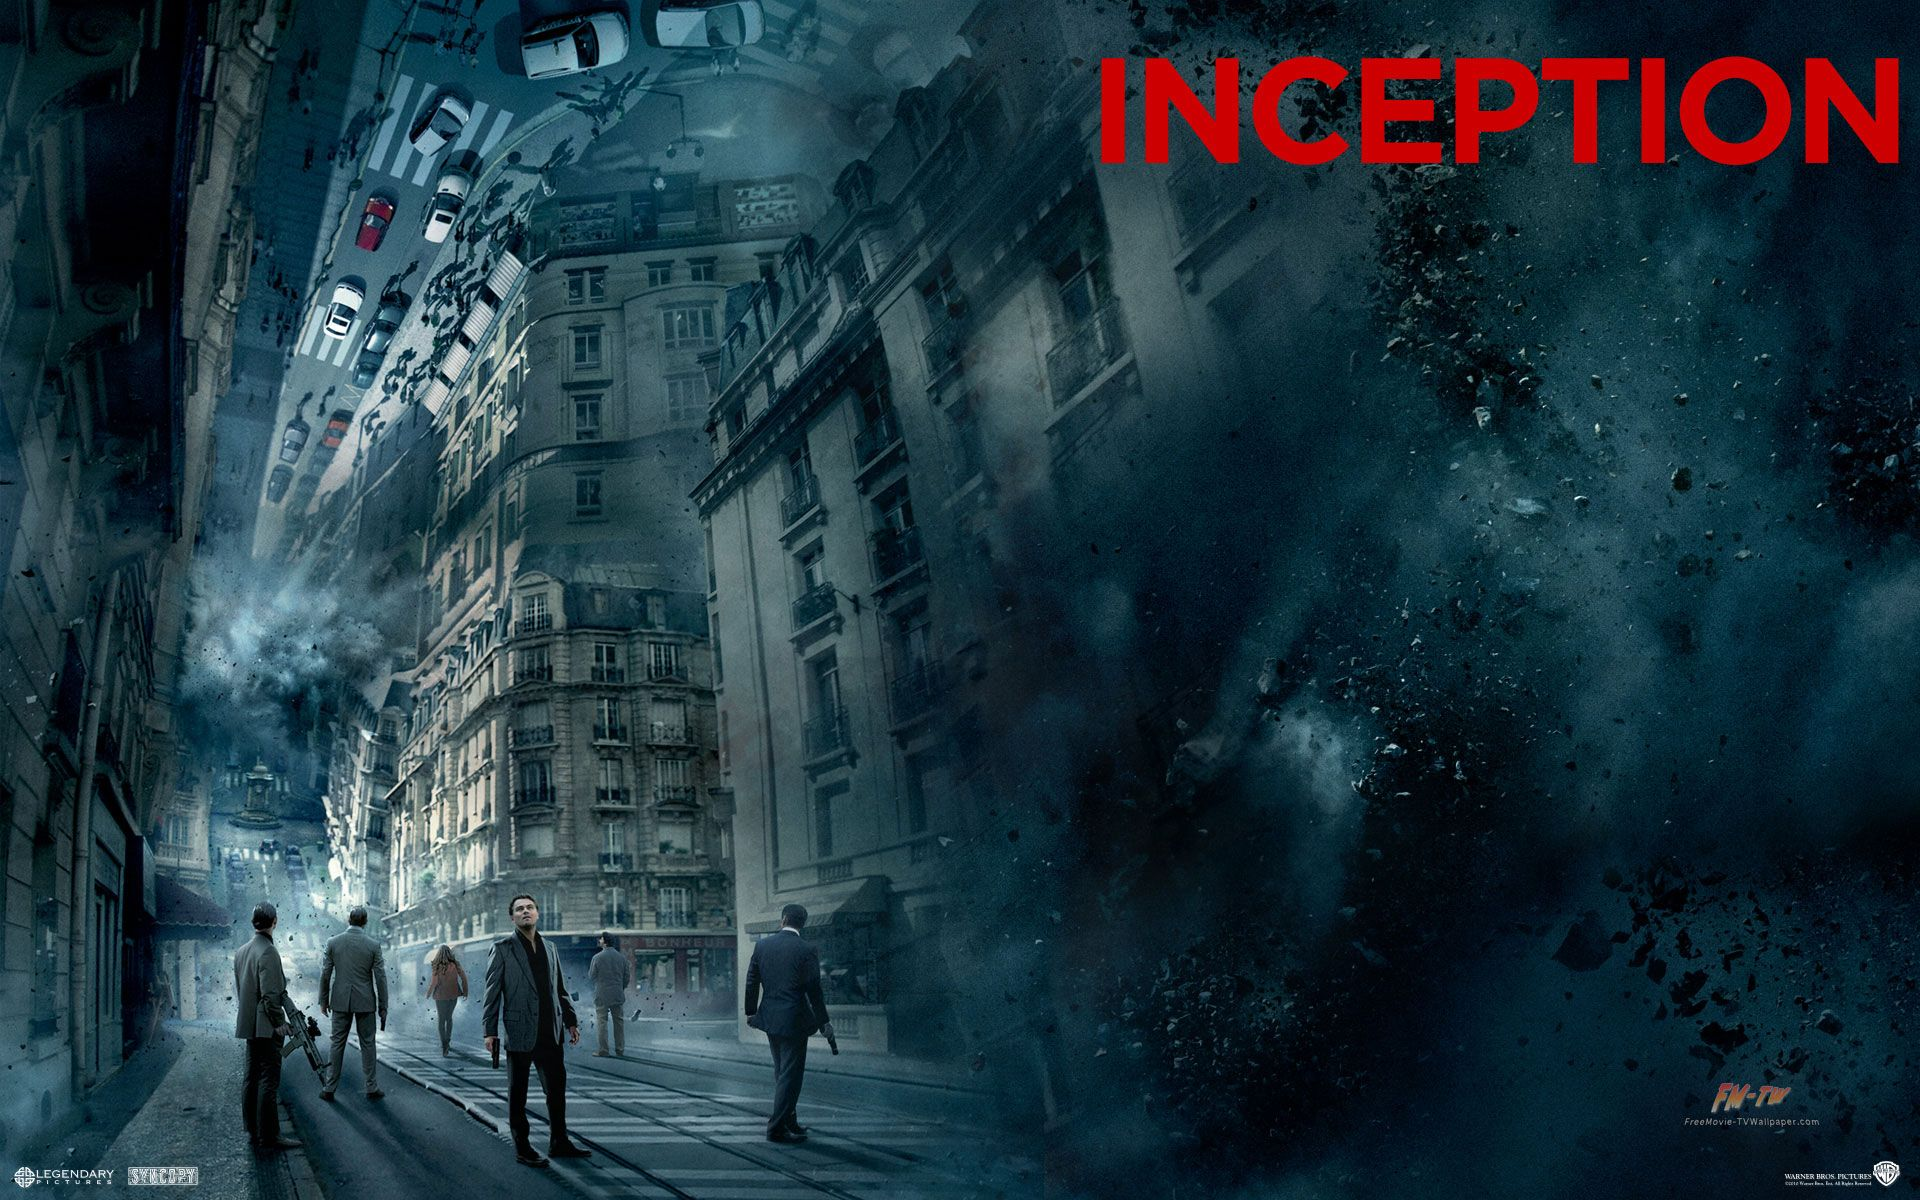 Inception Images Wallpaper Image Click Right Inception Movie Movie Wallpapers Widescreen Wallpaper